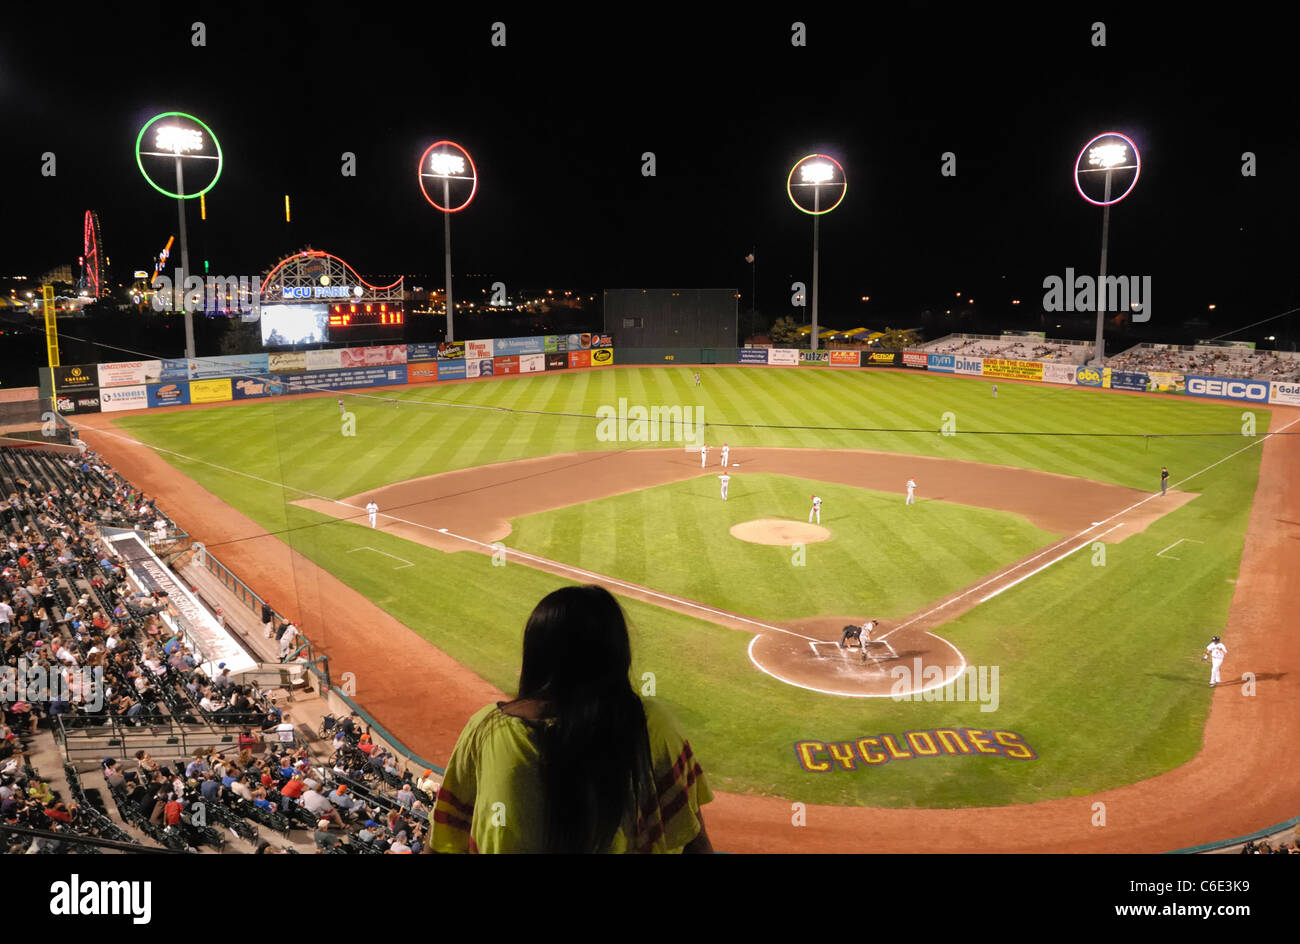 Brooklyn Cyclones night baseball game, view from Luxury Suite outdoor area, MCU Park, Coney Island, New York USA - Stock Image